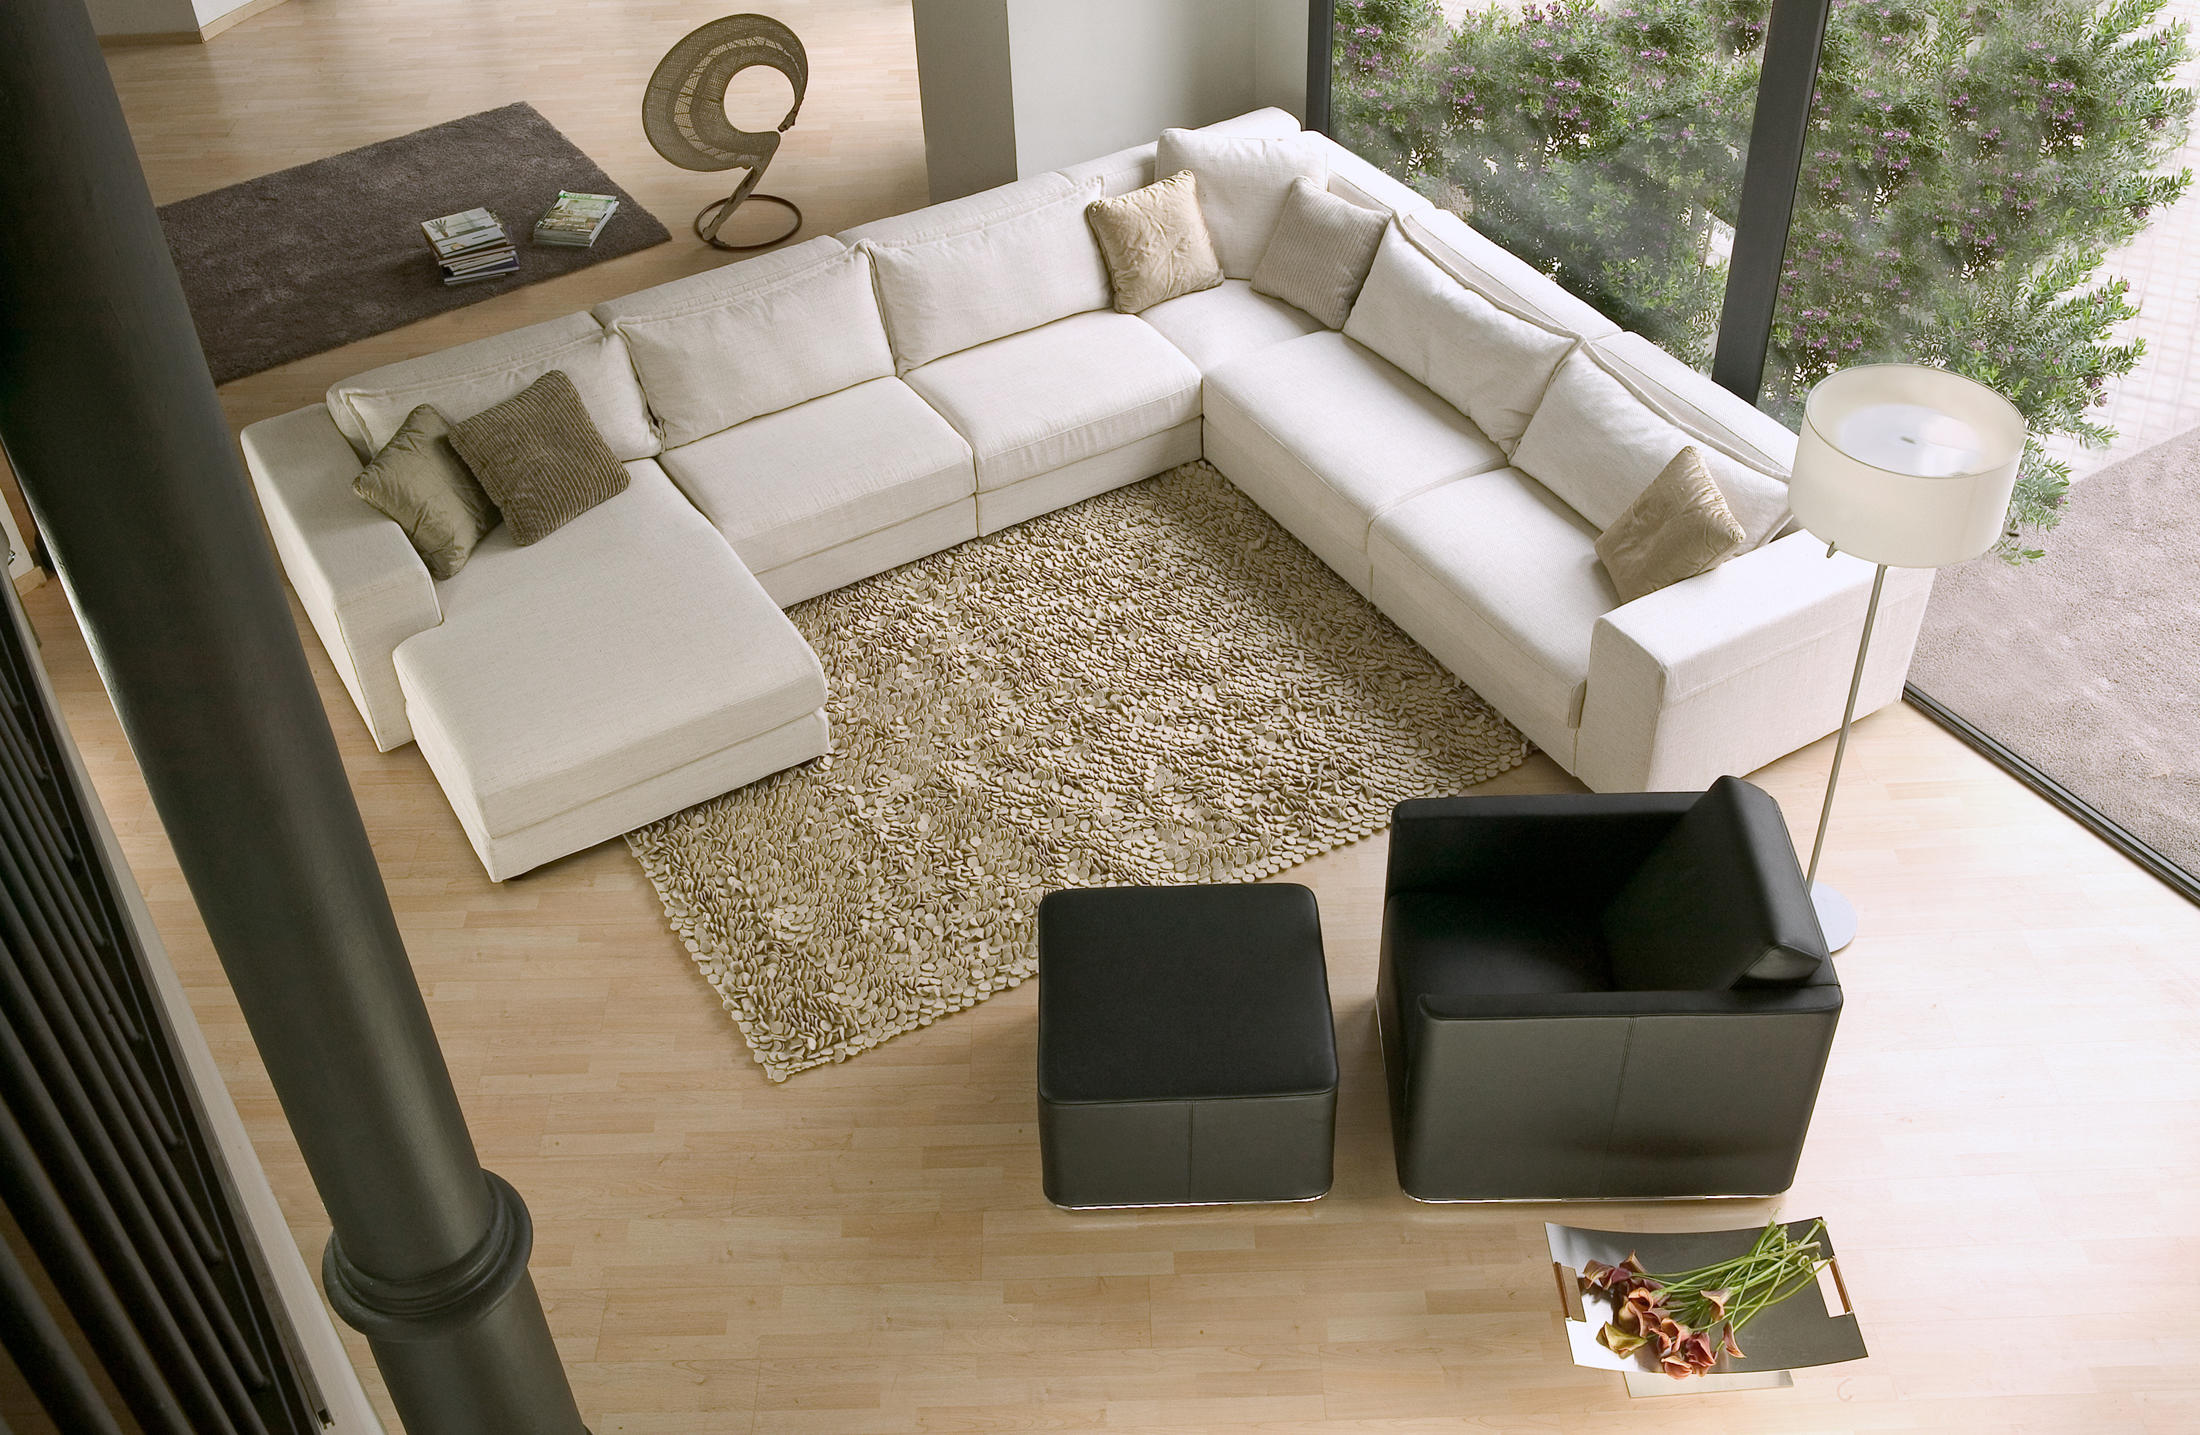 Transit sofa lounge sofas from grassoler architonic for Sofas articulados modelos